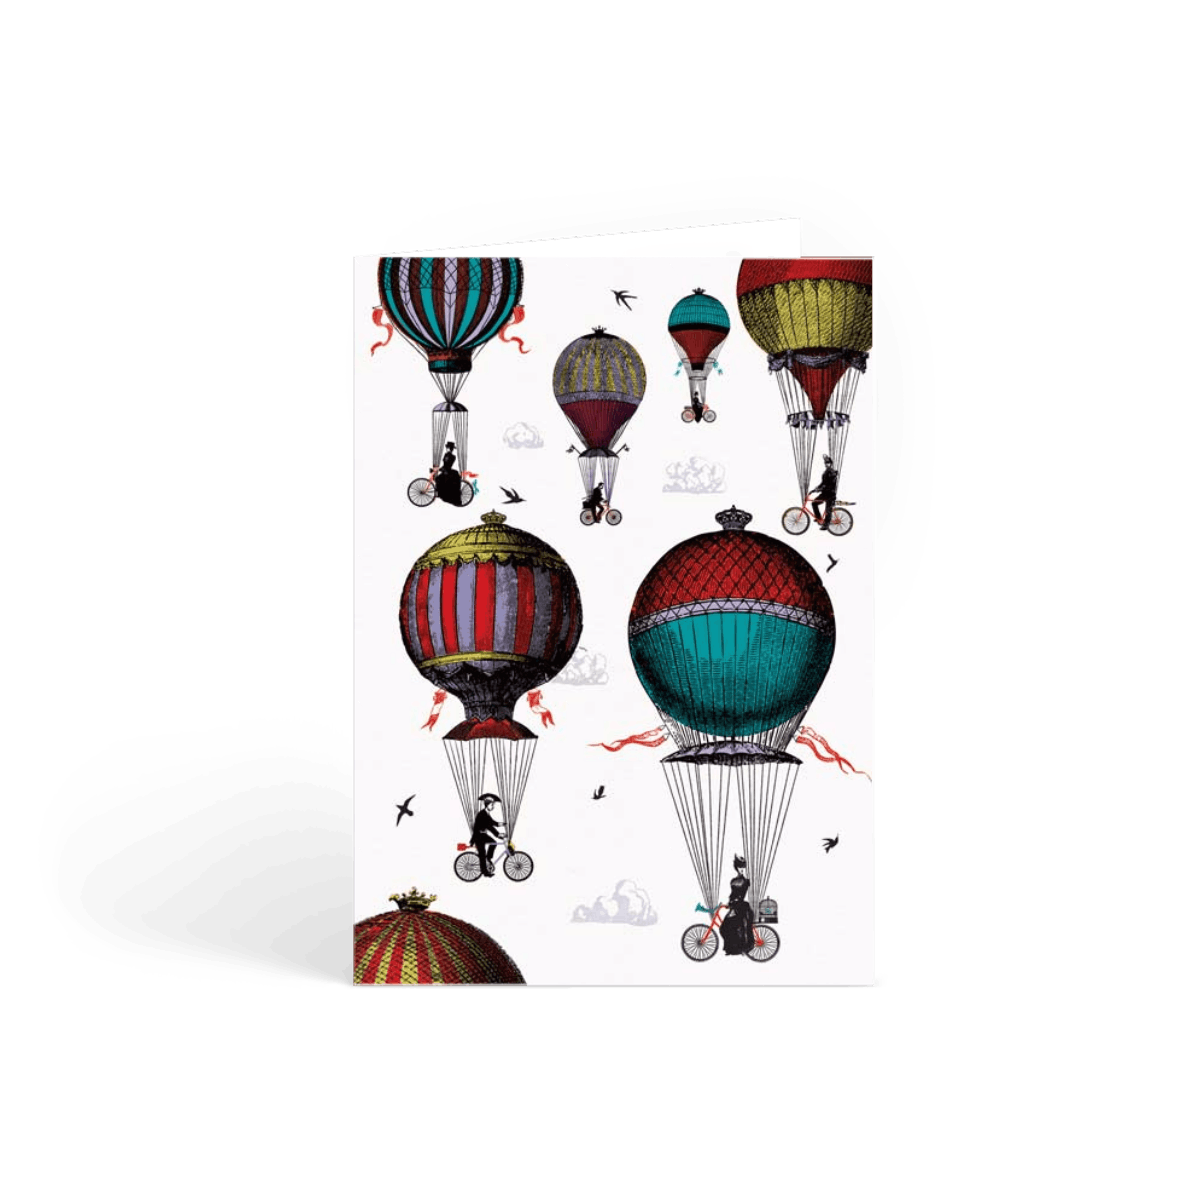 Https%3a%2f%2fwww.papier.com%2fproduct image%2f12930%2f2%2fhot air balloon 3259 front 1478875403.png?ixlib=rb 1.1